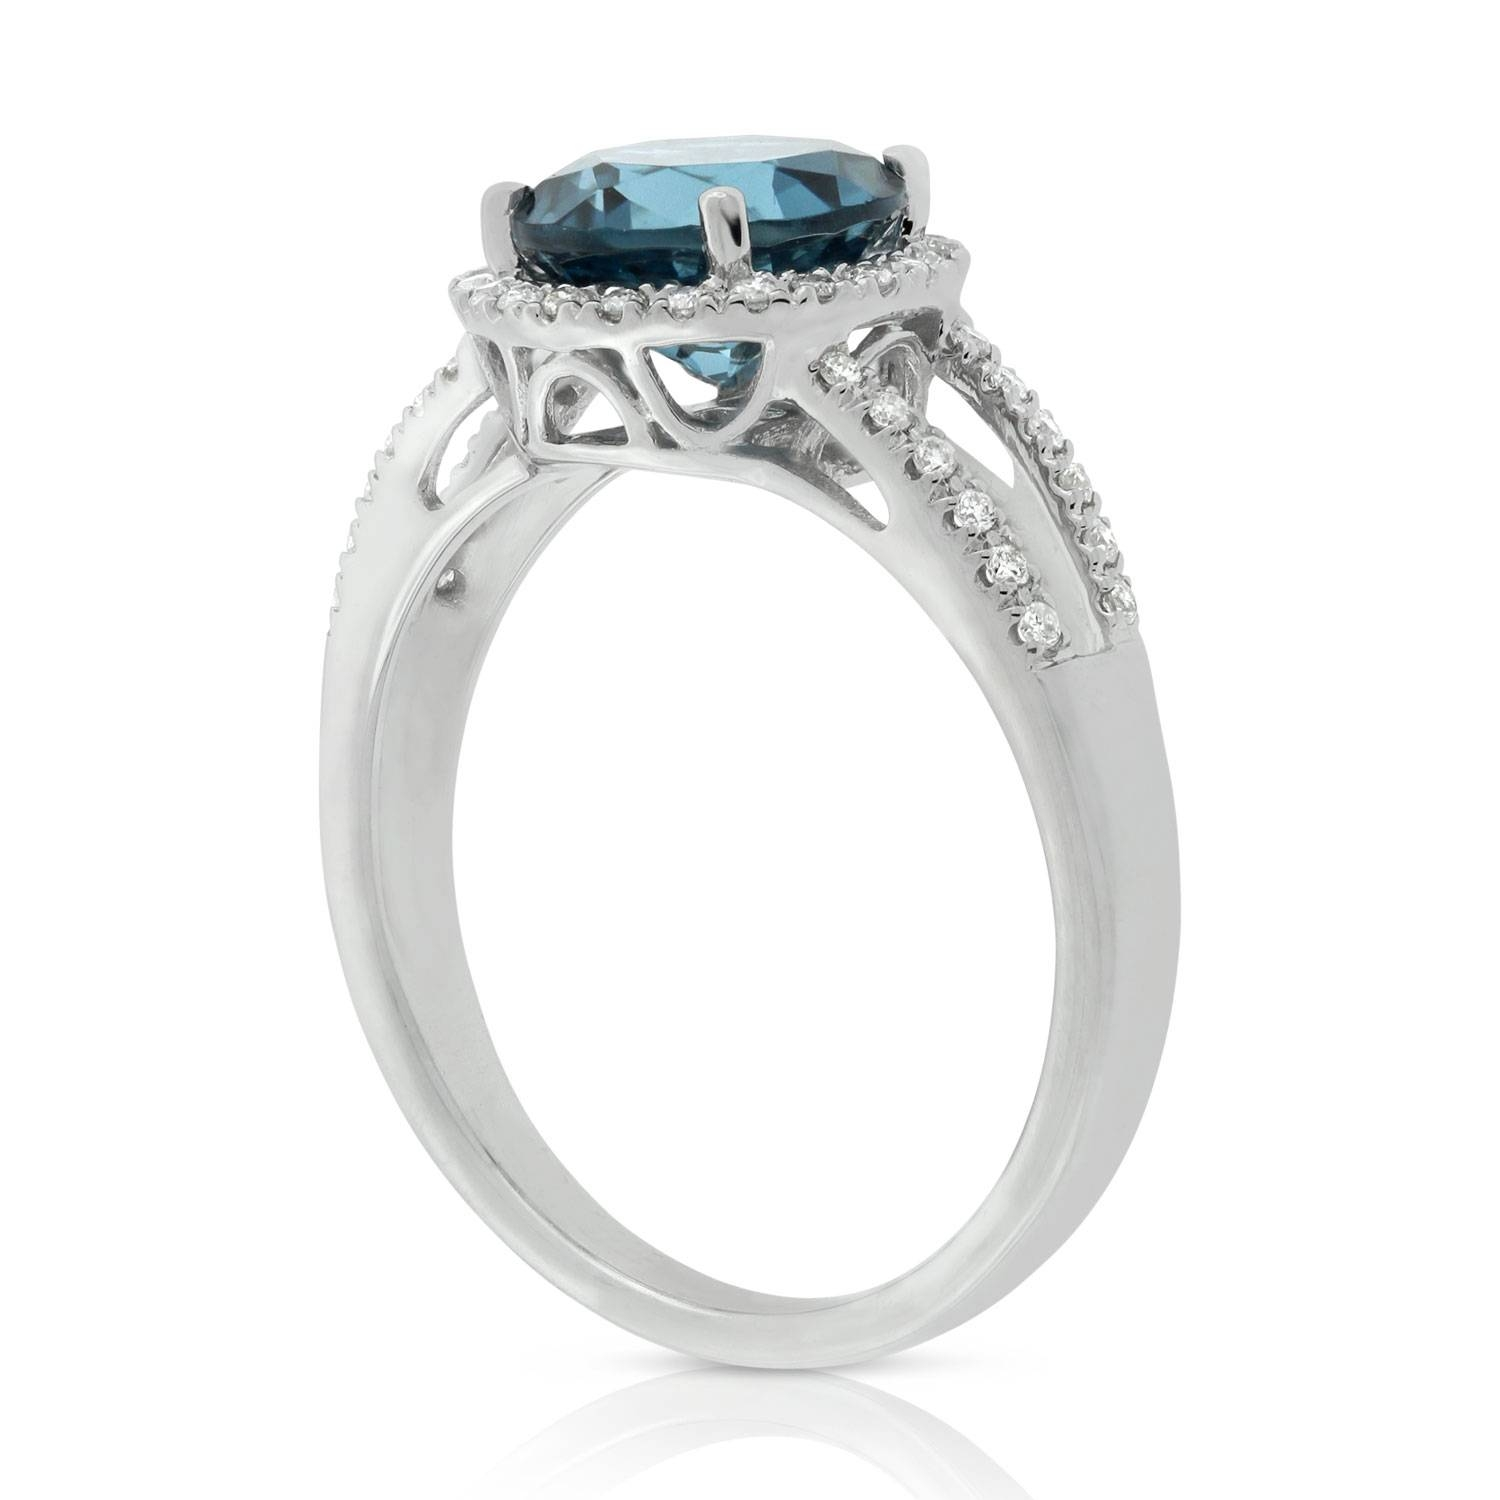 Blue Topaz & White Sapphire Ring 14K | Ben Bridge Jeweler Within 2017 White Sapphire Anniversary Rings (Gallery 25 of 25)